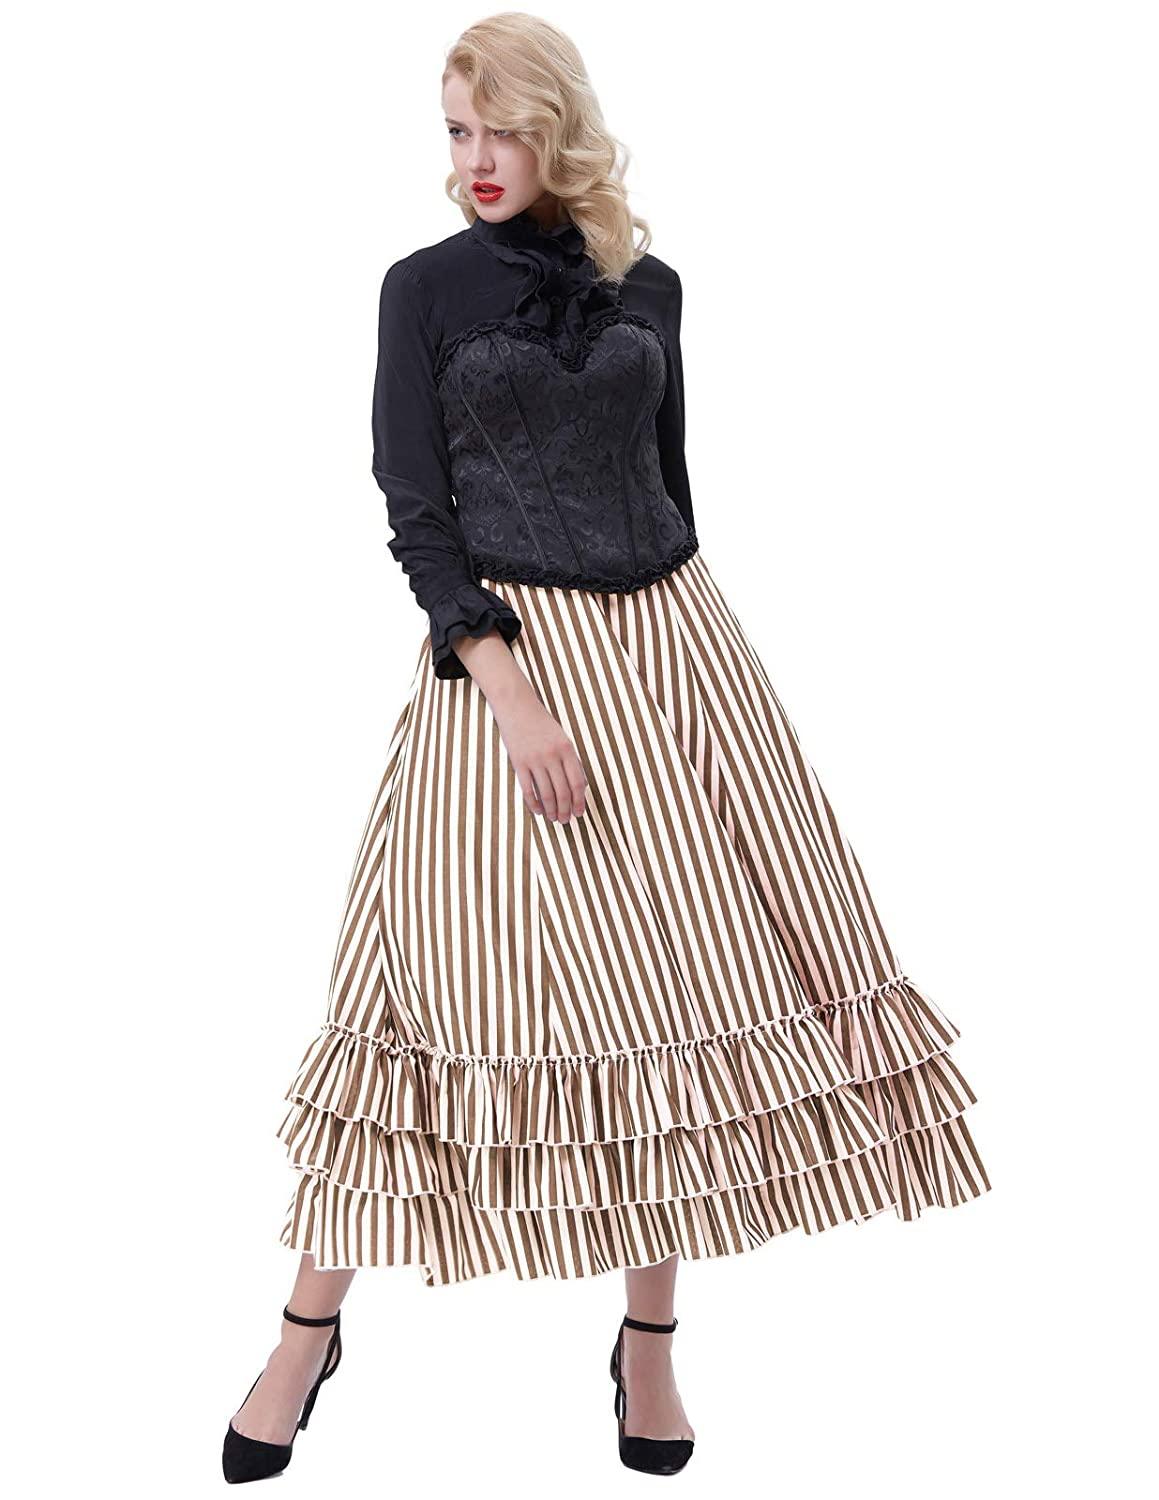 Victorian Skirts | Bustle, Walking, Edwardian Skirts Belle Poque Womens Vintage Stripes Gothic Victorian Skirt Renaissance Style Falda $37.99 AT vintagedancer.com